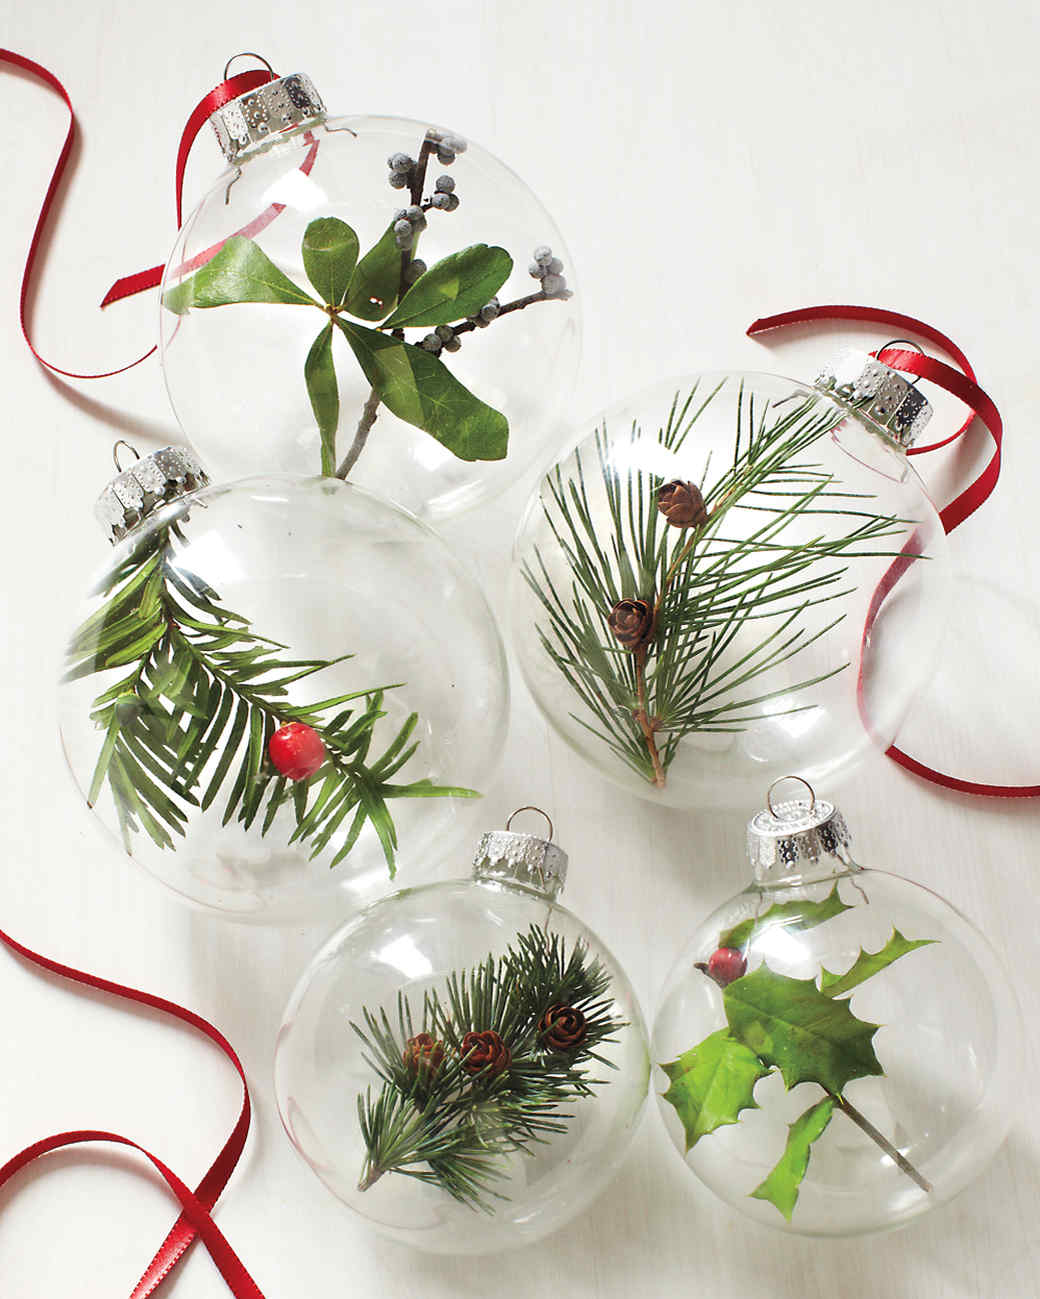 Discussion on this topic: DIY Holiday Decoration: Poinsettia Ornament, diy-holiday-decoration-poinsettia-ornament/